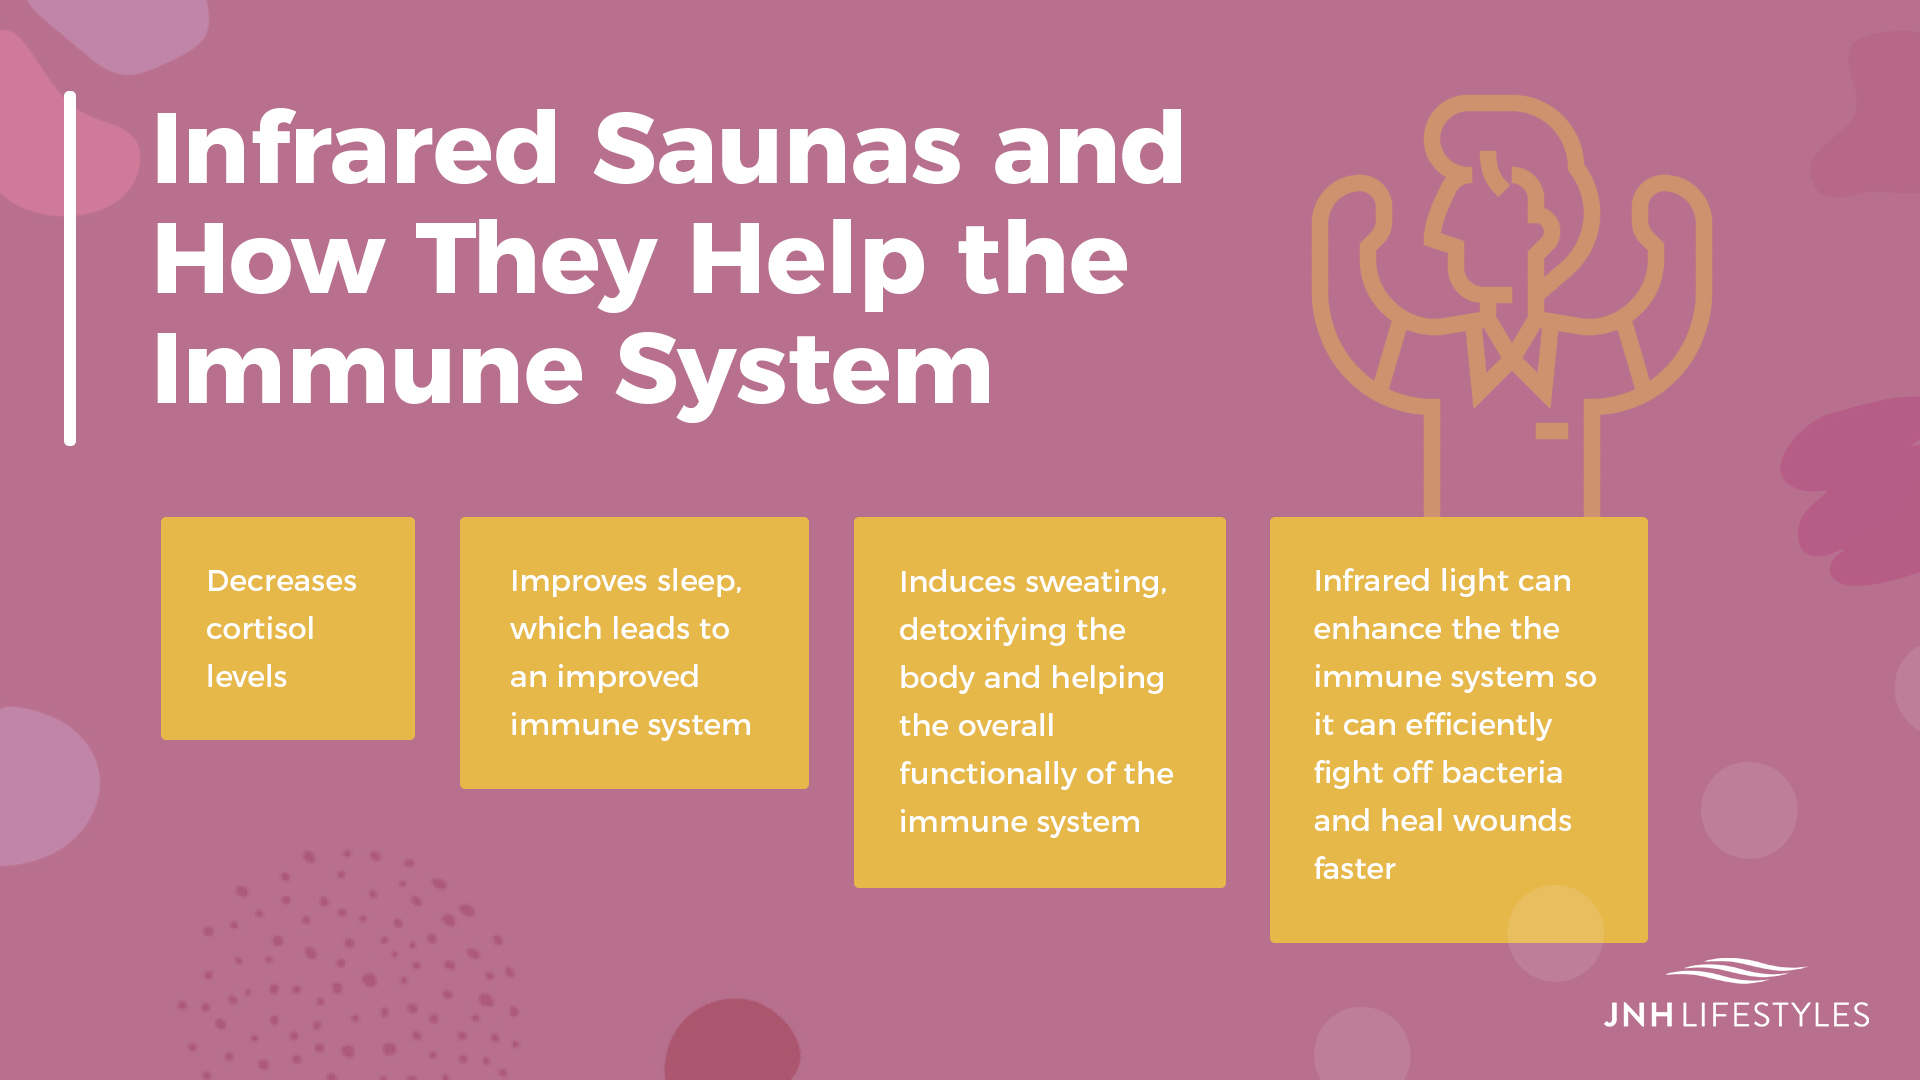 Infrared Saunas and How They Help the Immune System -Decreases cortisol levels -Improves sleep, which leads to an improved immune system -Induces sweating, detoxifying the body and helping the overall functionally of the immune system -Infrared light can enhance the the immune system so it can efficiently fight off bacteria and heal wounds faster